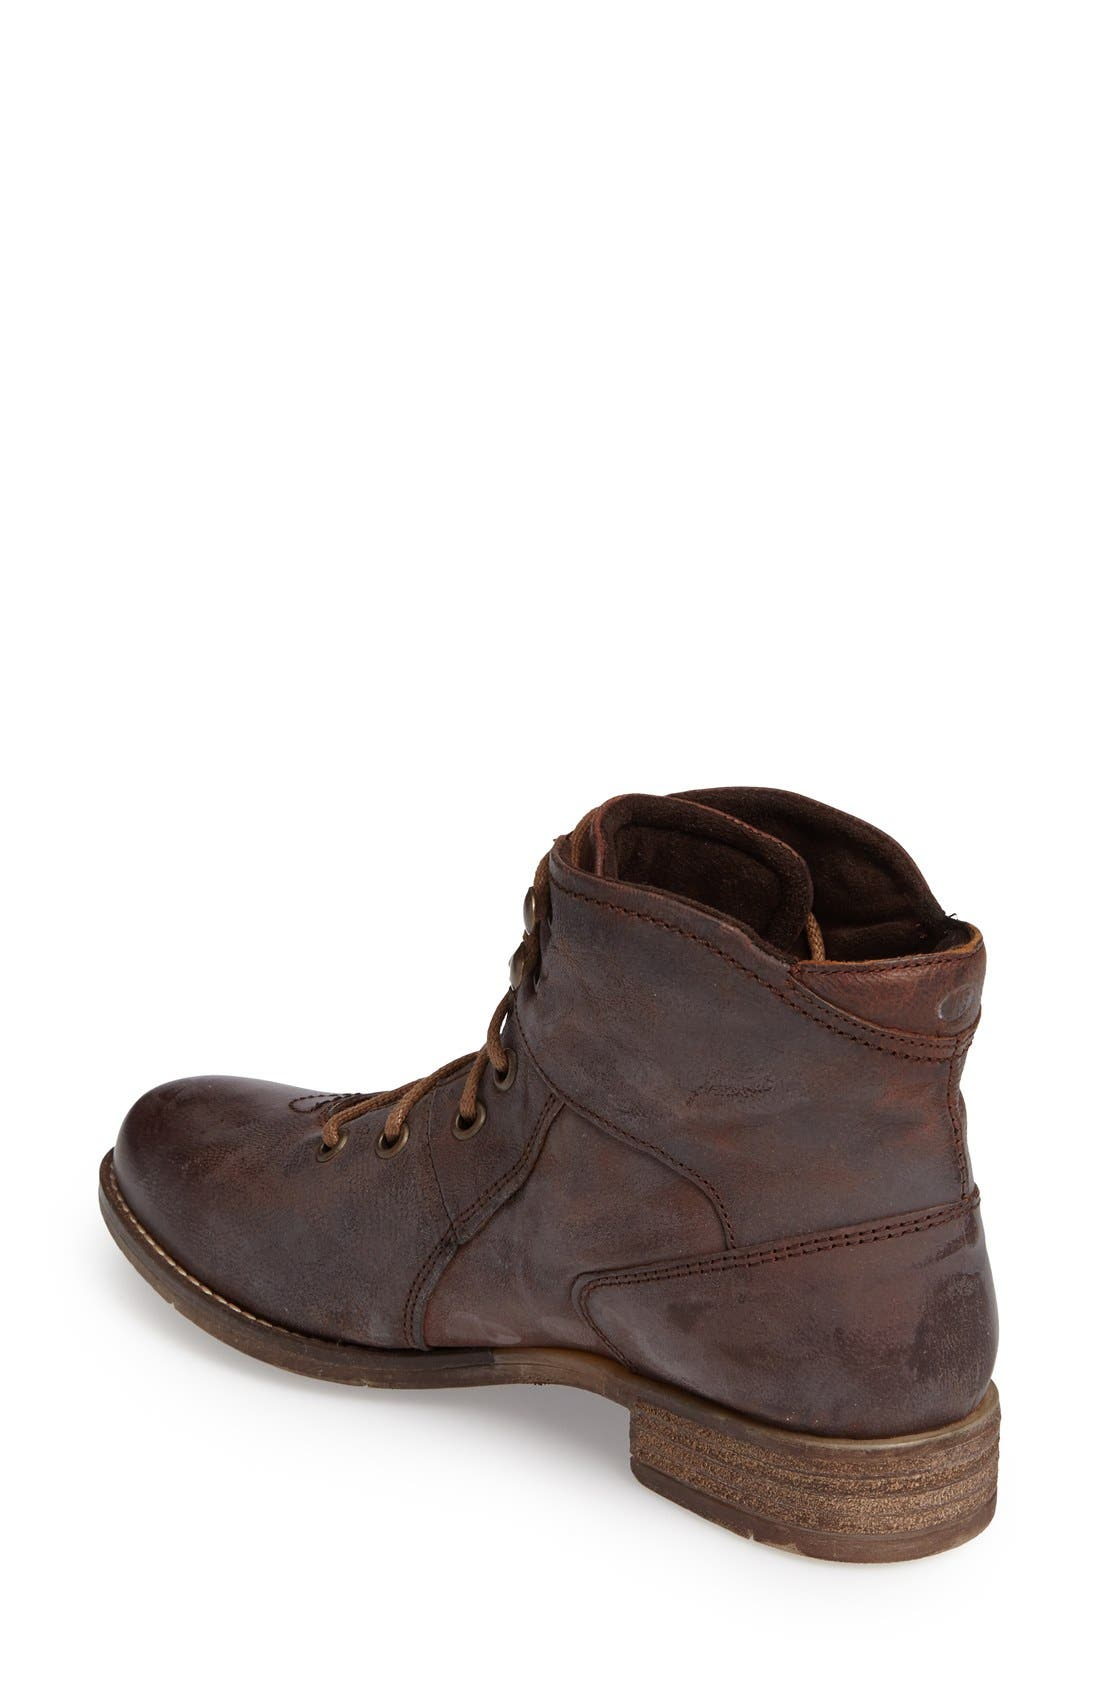 Sienna 11 Boot,                             Alternate thumbnail 5, color,                             MORO LEATHER